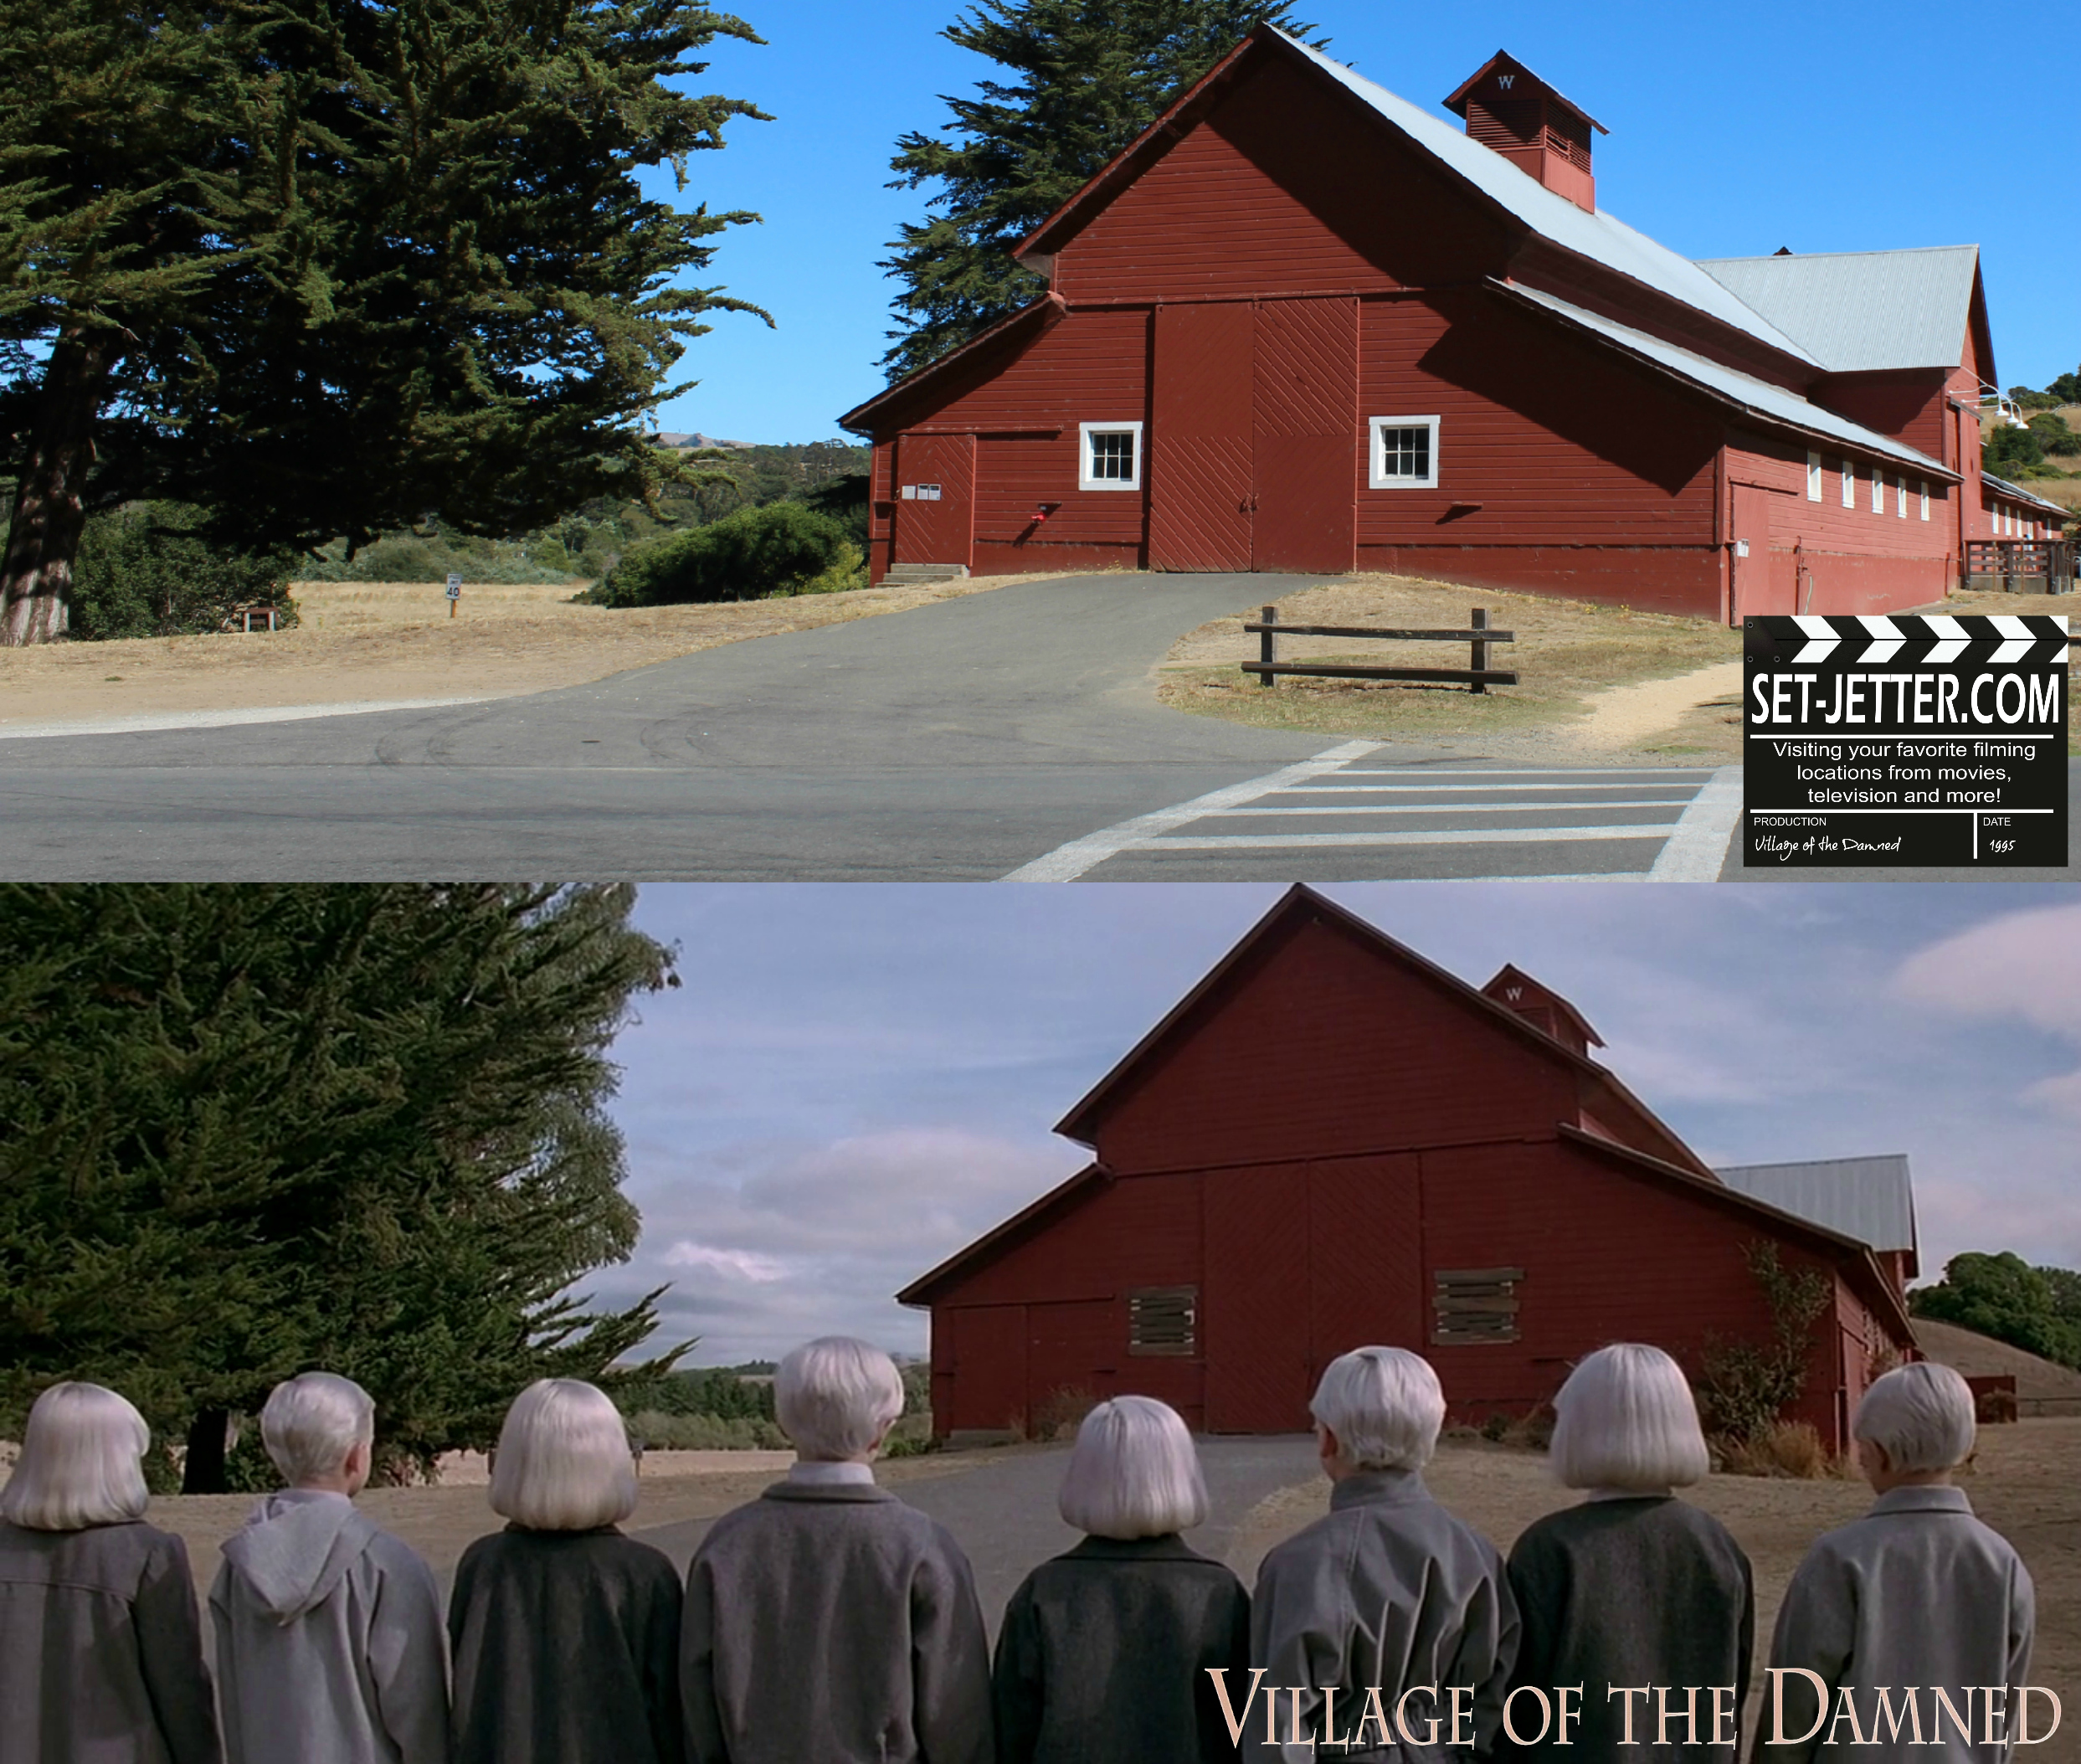 Village of the Damned comparison 187.jpg